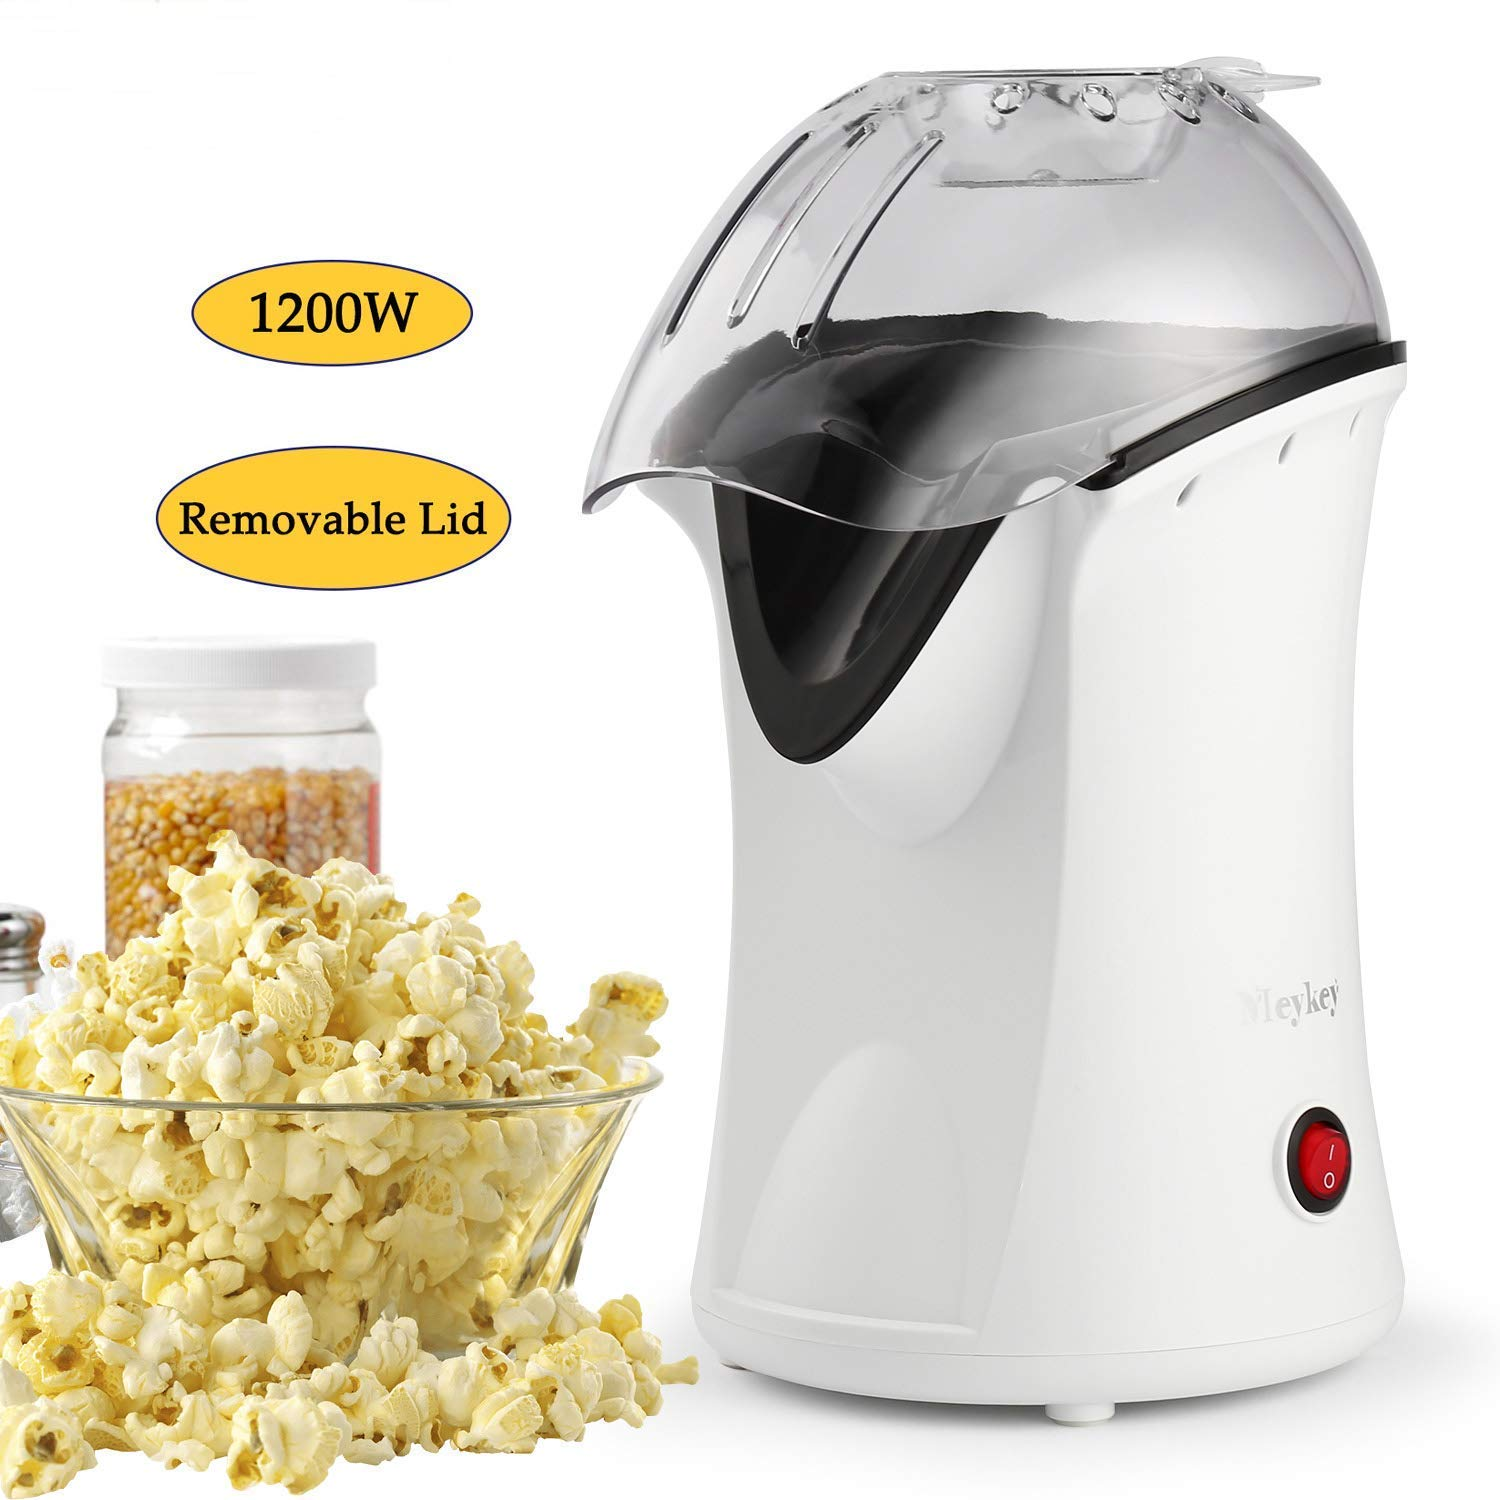 US STOCK 1200W Hot Air Popcorn Popper Electric Popcorn Machine Maker with Wide Mouth Design Measuring Cup and Removable Lid White